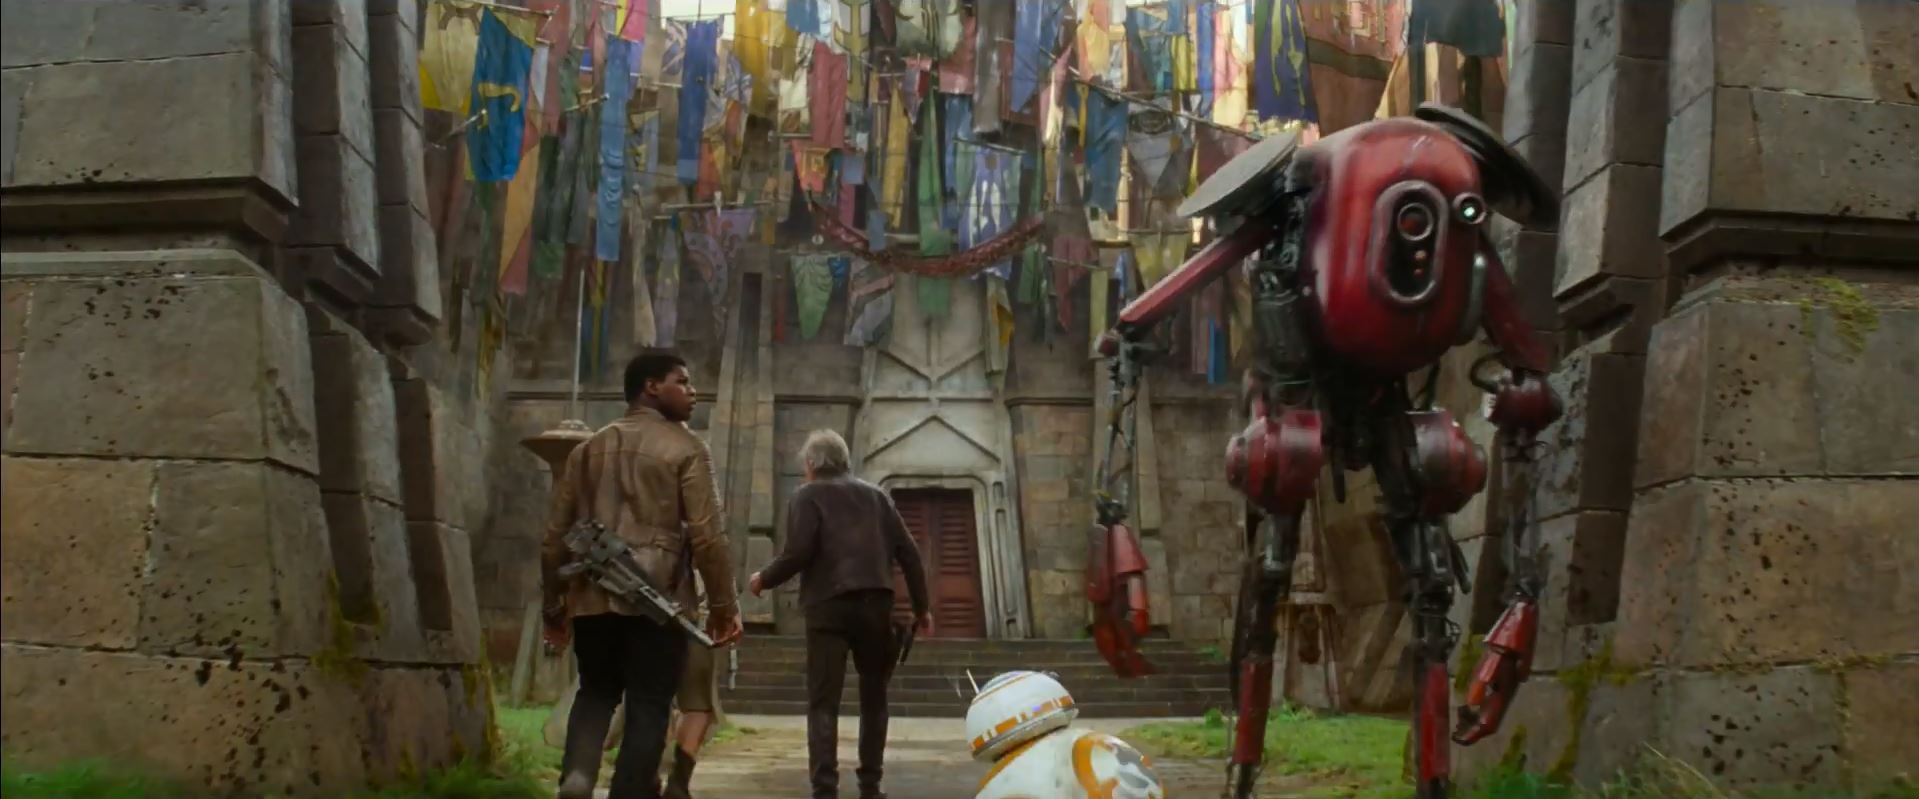 Finn and Han solo visit a temple